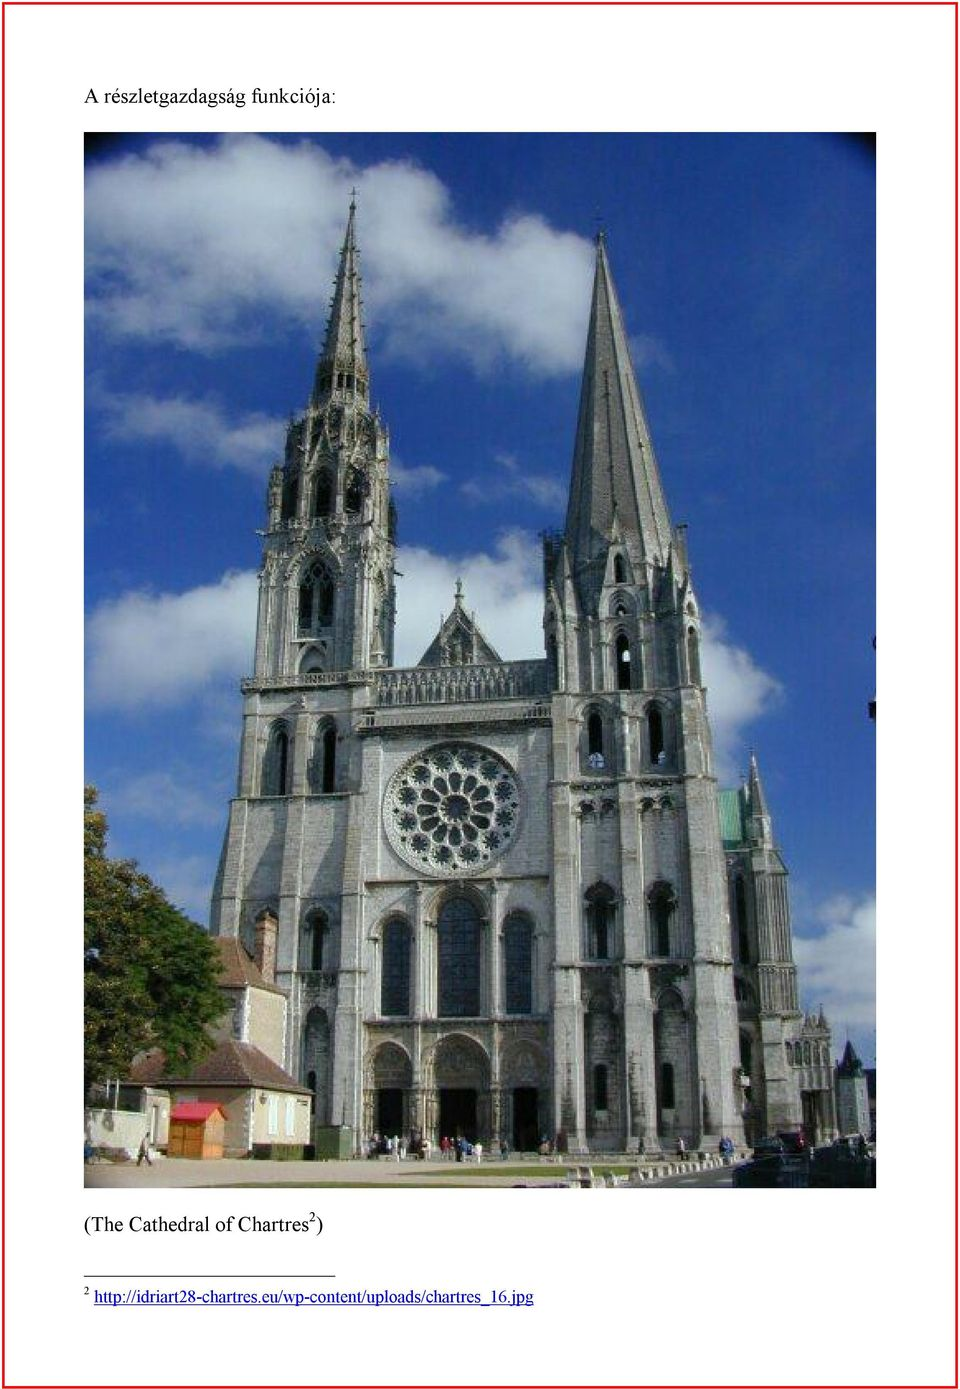 2 http://idriart28-chartres.